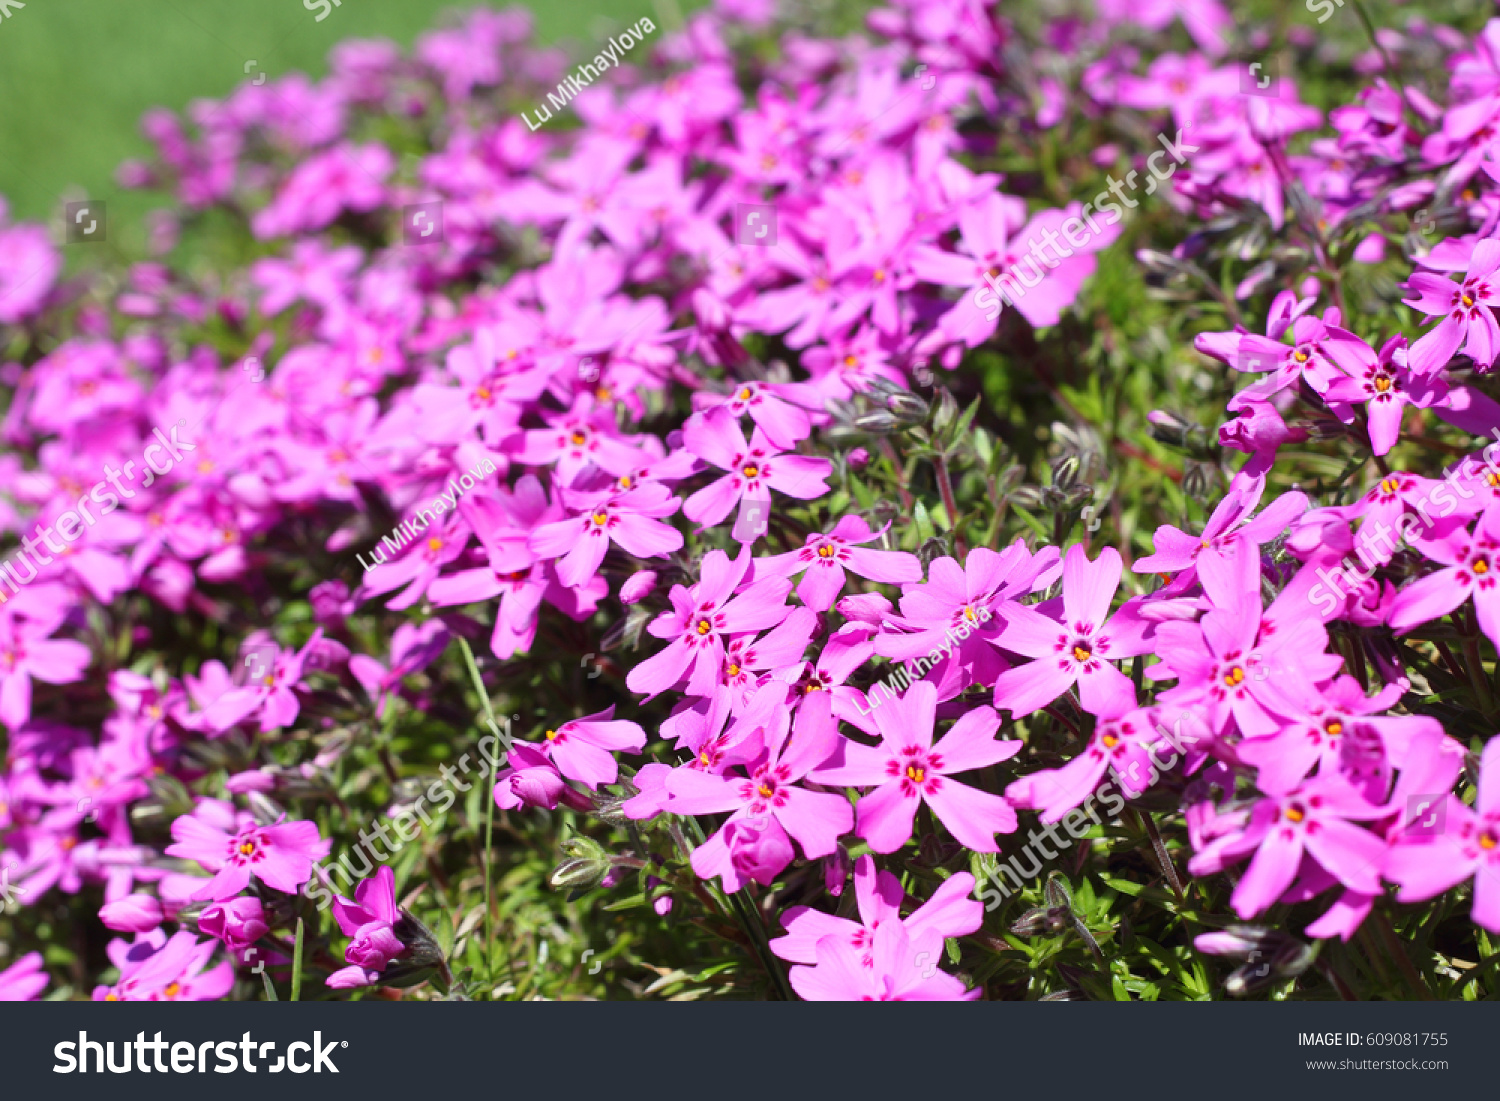 Wild Pink Alpine Flowers Growing On Stock Photo Edit Now 609081755